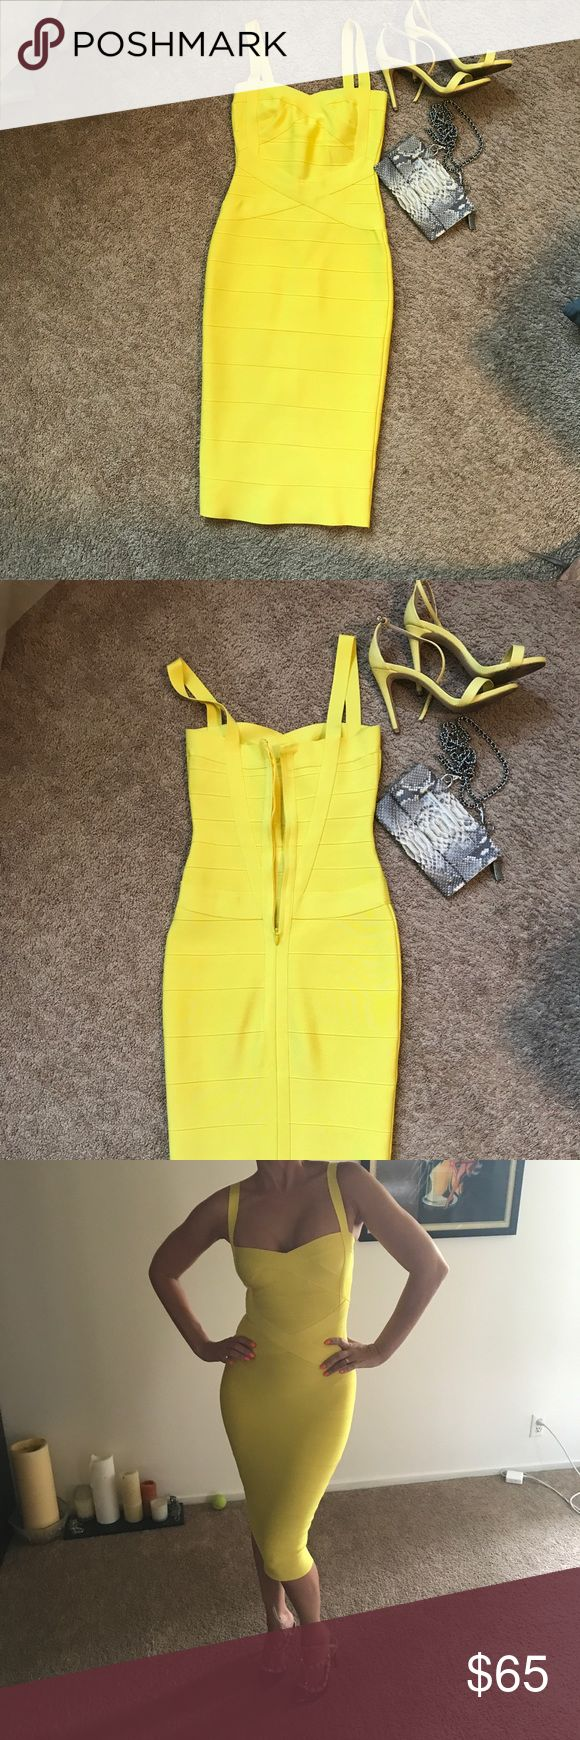 bandage dress yellow Sexy and daring, this bandage dress meets all your night-out style needs. This figure-flattering party dress is the perfect showstopper. Dresses Midi